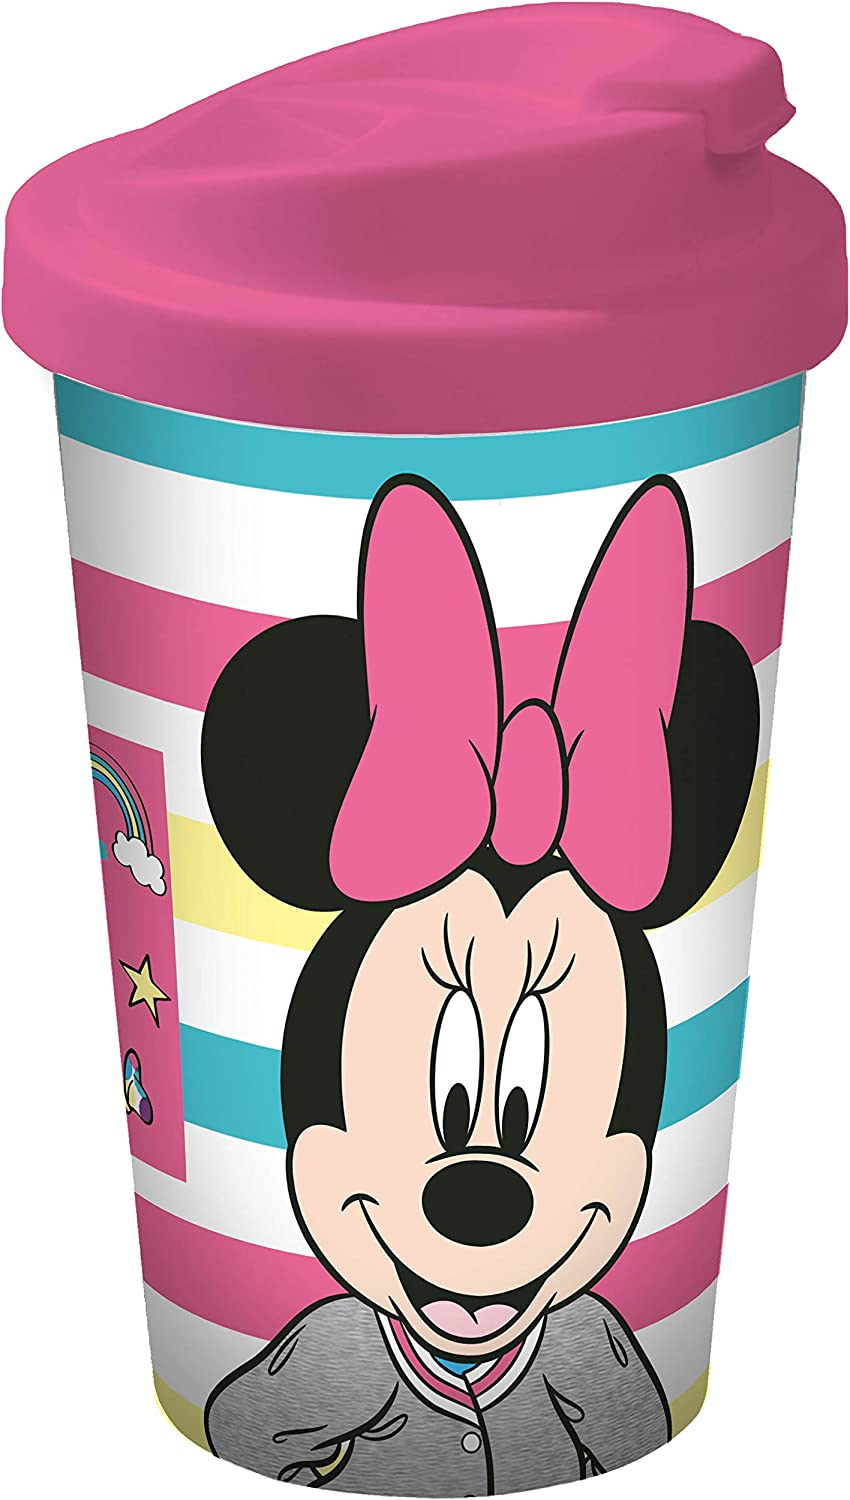 Disney Mickey Mouse 12079 Minnie Mouse Coffee to Go Mug, Travel Cup, Reusable Cup, Polypropylene, 400 ml, Multi-Coloured